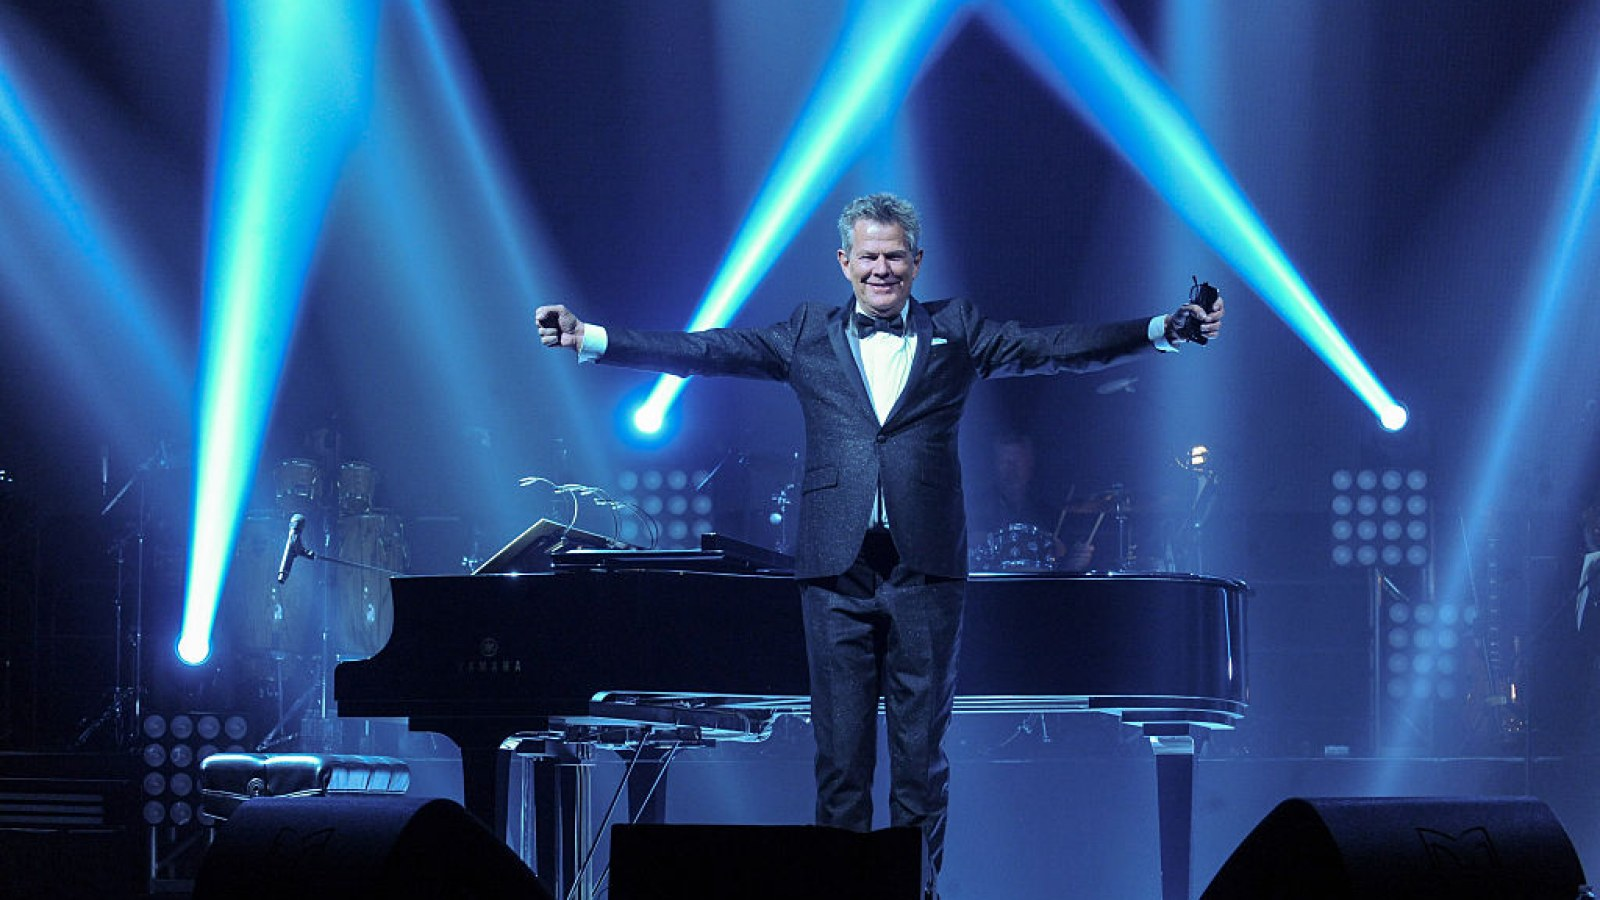 Record Producer David Foster S 50 Year Career Of Hits Is Told In Candid New Documentary